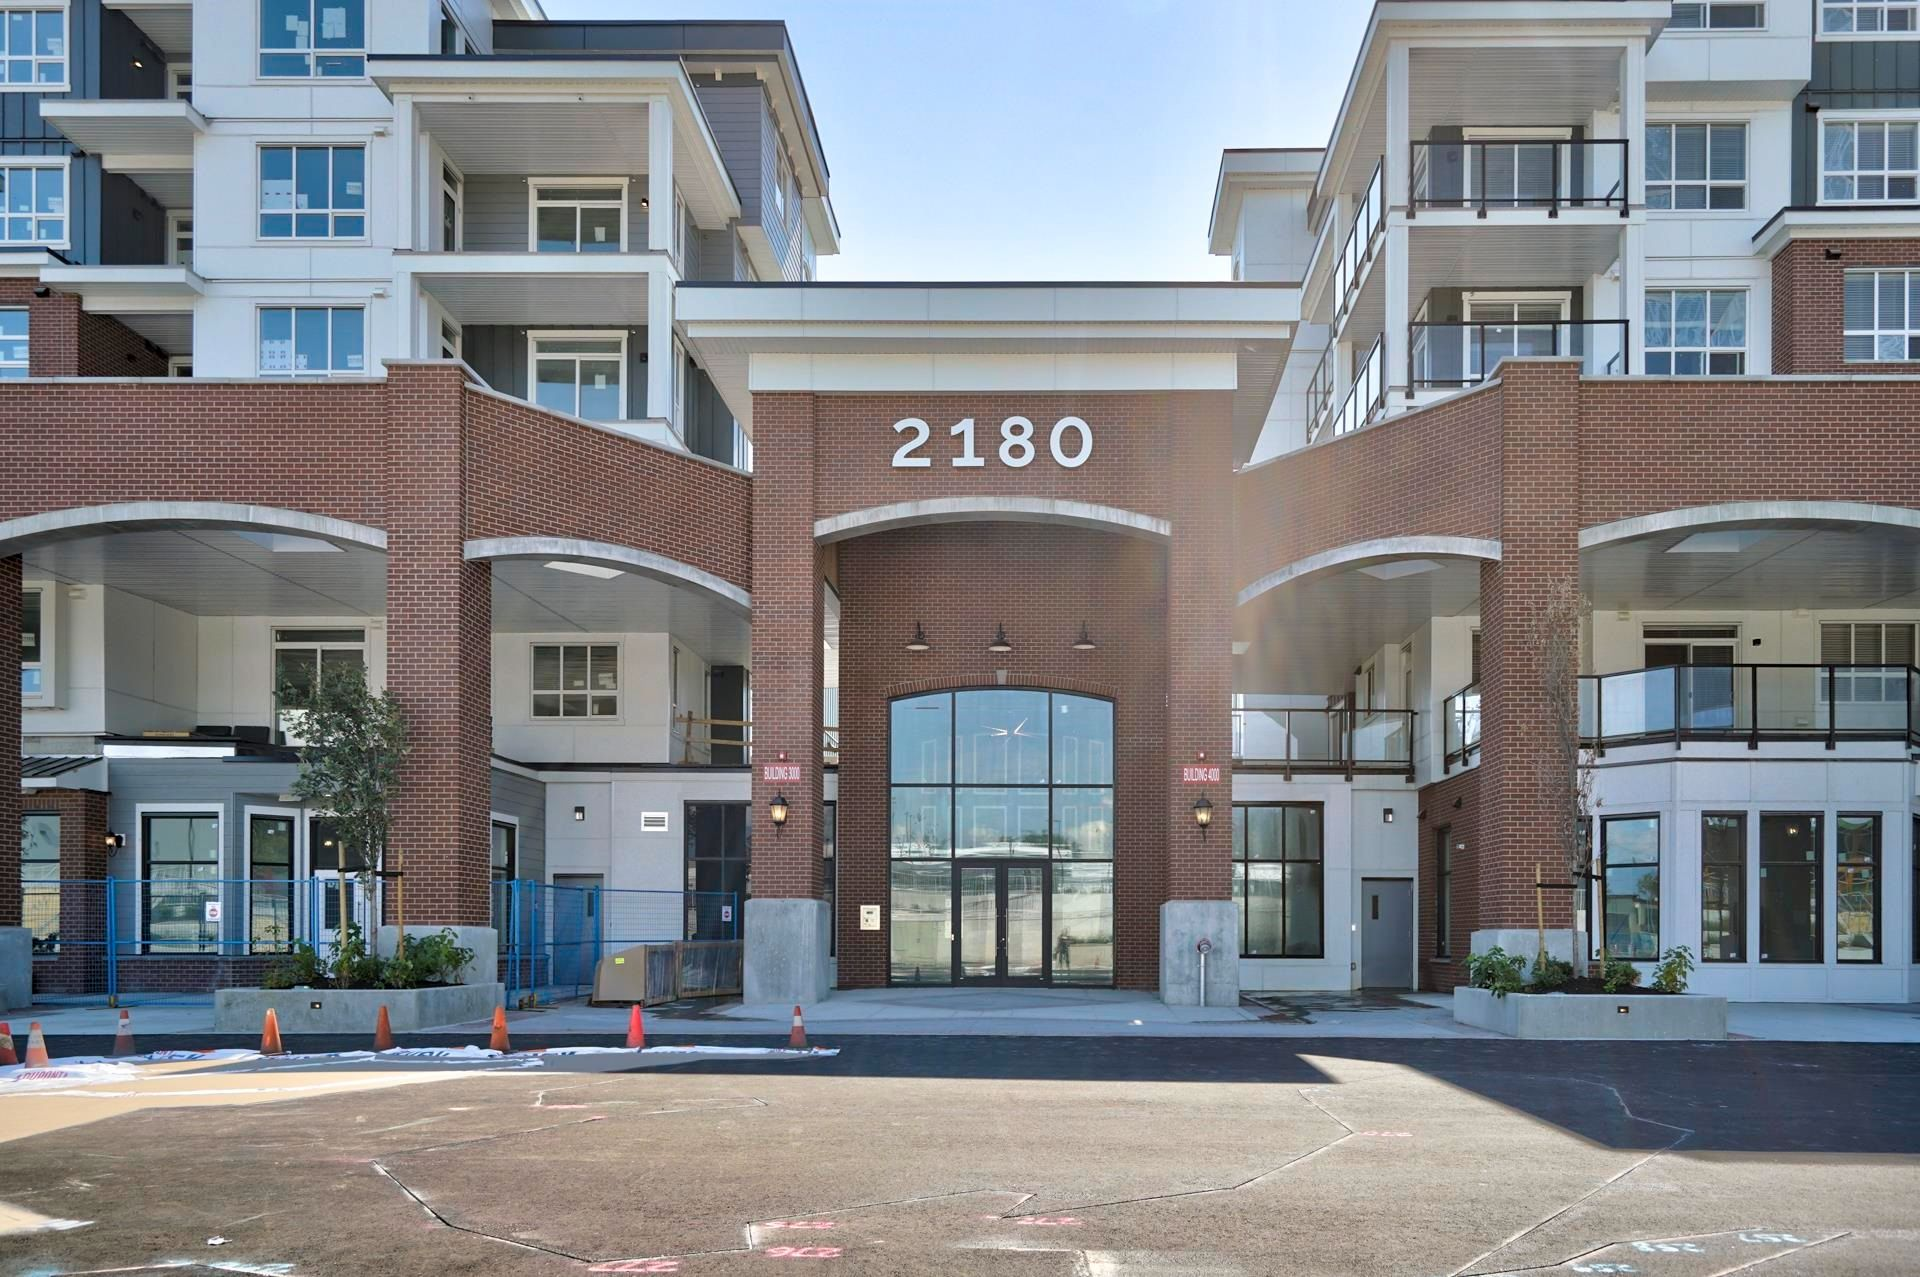 """Main Photo: 4412 2180 KELLY Avenue in Port Coquitlam: Central Pt Coquitlam Condo for sale in """"MONTROSE SQUARE"""" : MLS®# R2613383"""